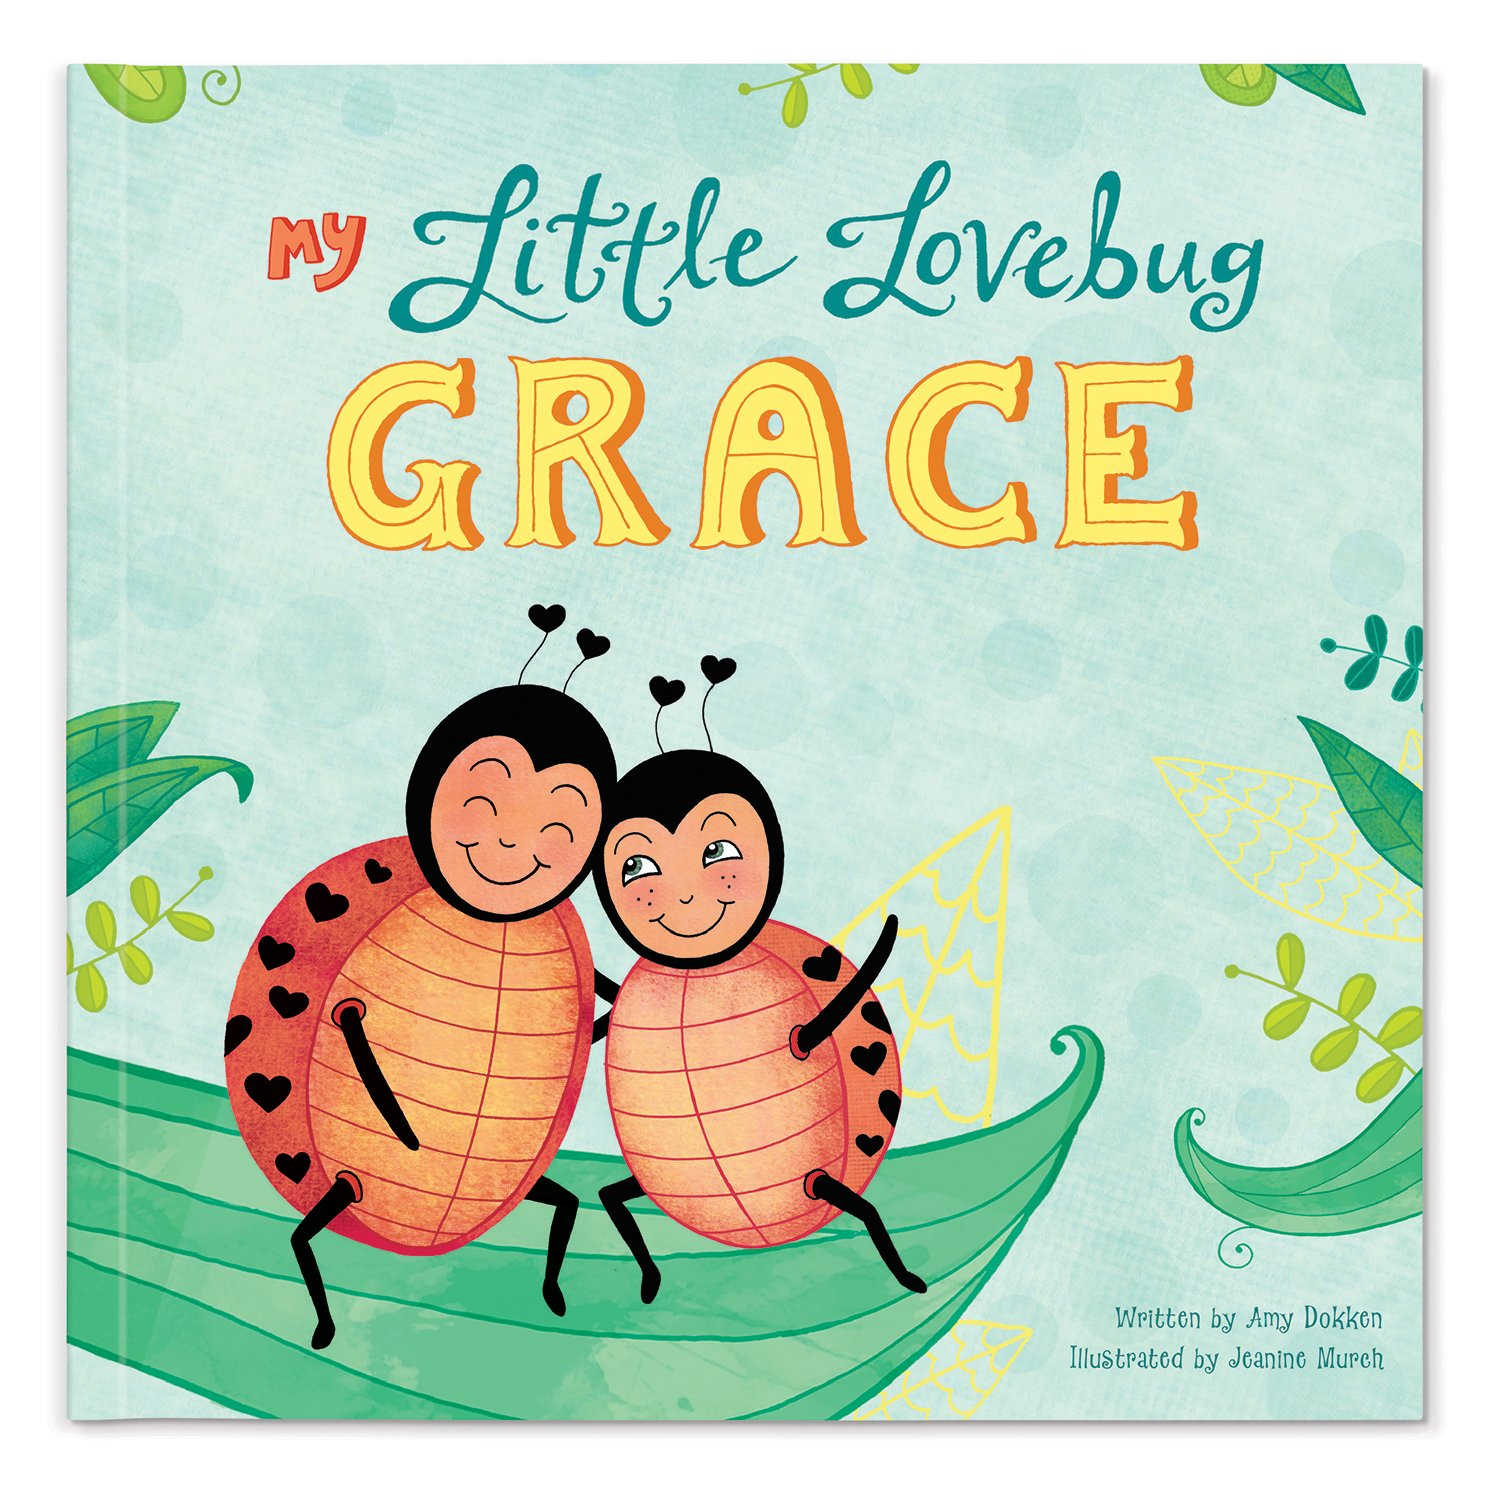 Lovebug Personalized Custom Name Love My Kids Book (Softcover)